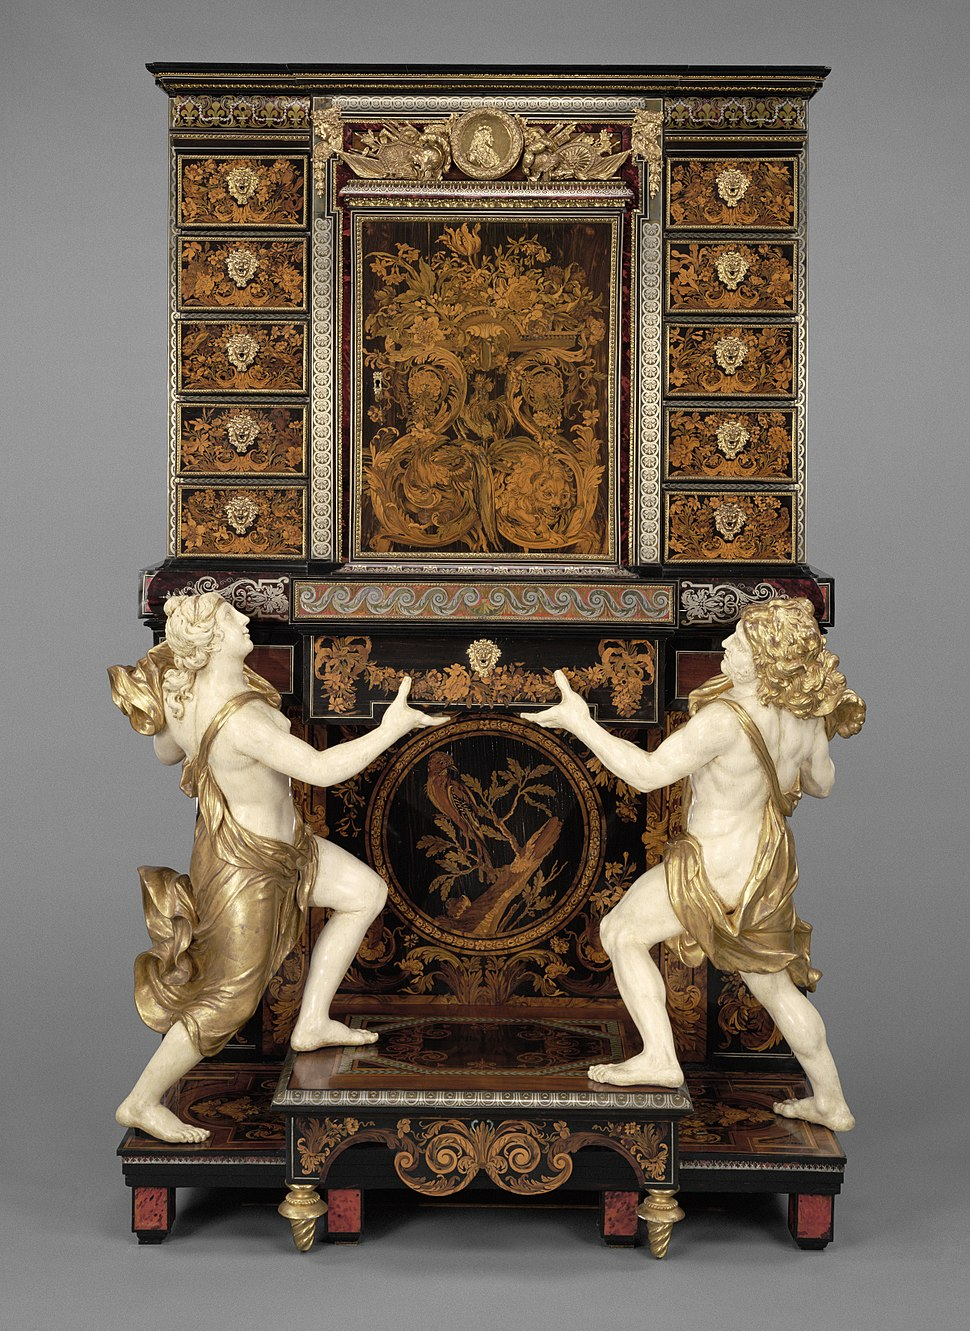 A cabinet-on-stand attributed to Andr%C3%A9-Charles Boulle at the Getty Museum